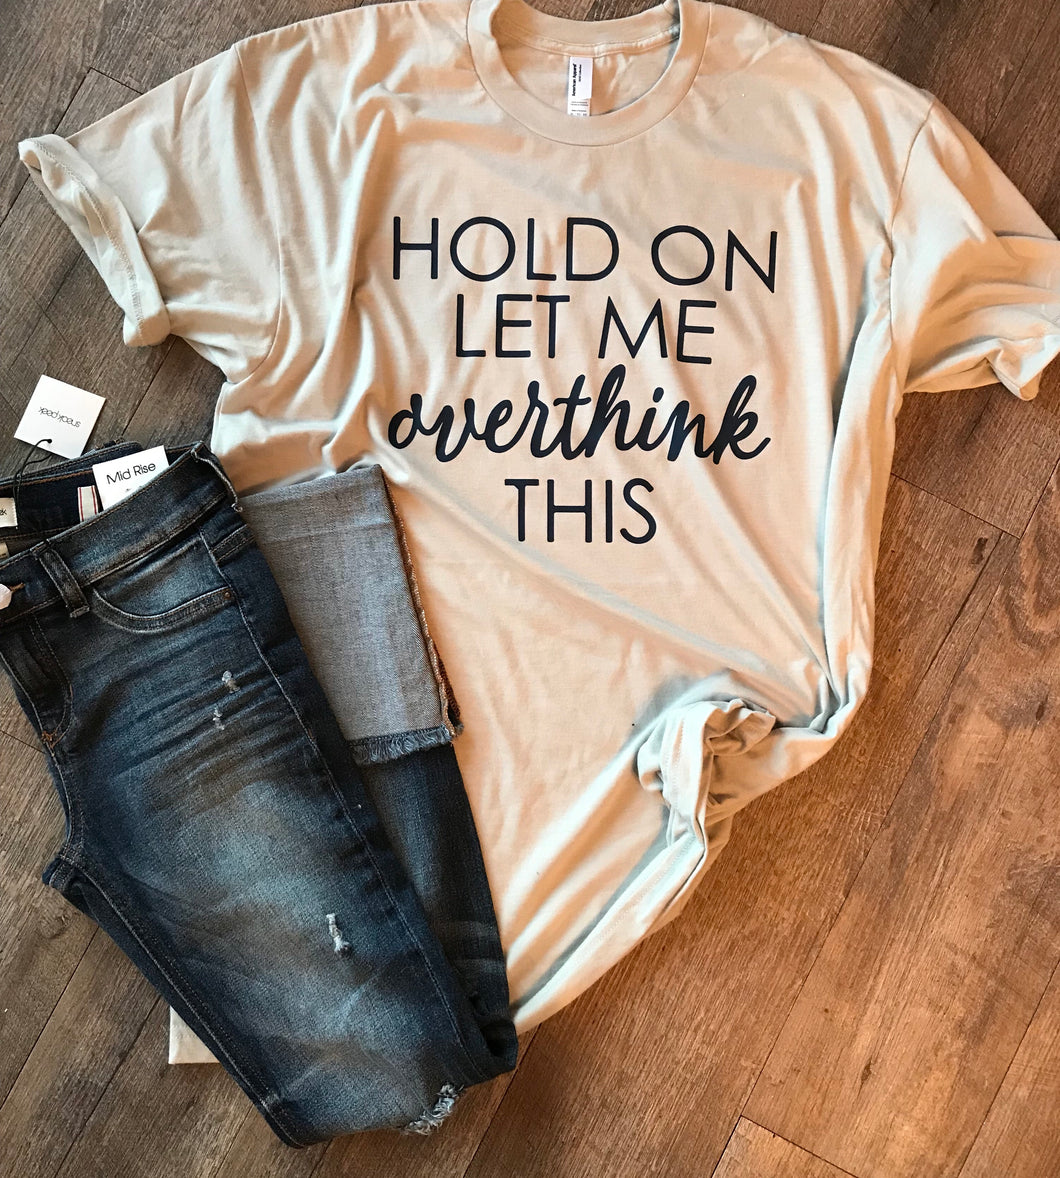 Hold on let me overthink this funny graphic tee - Mavictoria Designs Hot Press Express